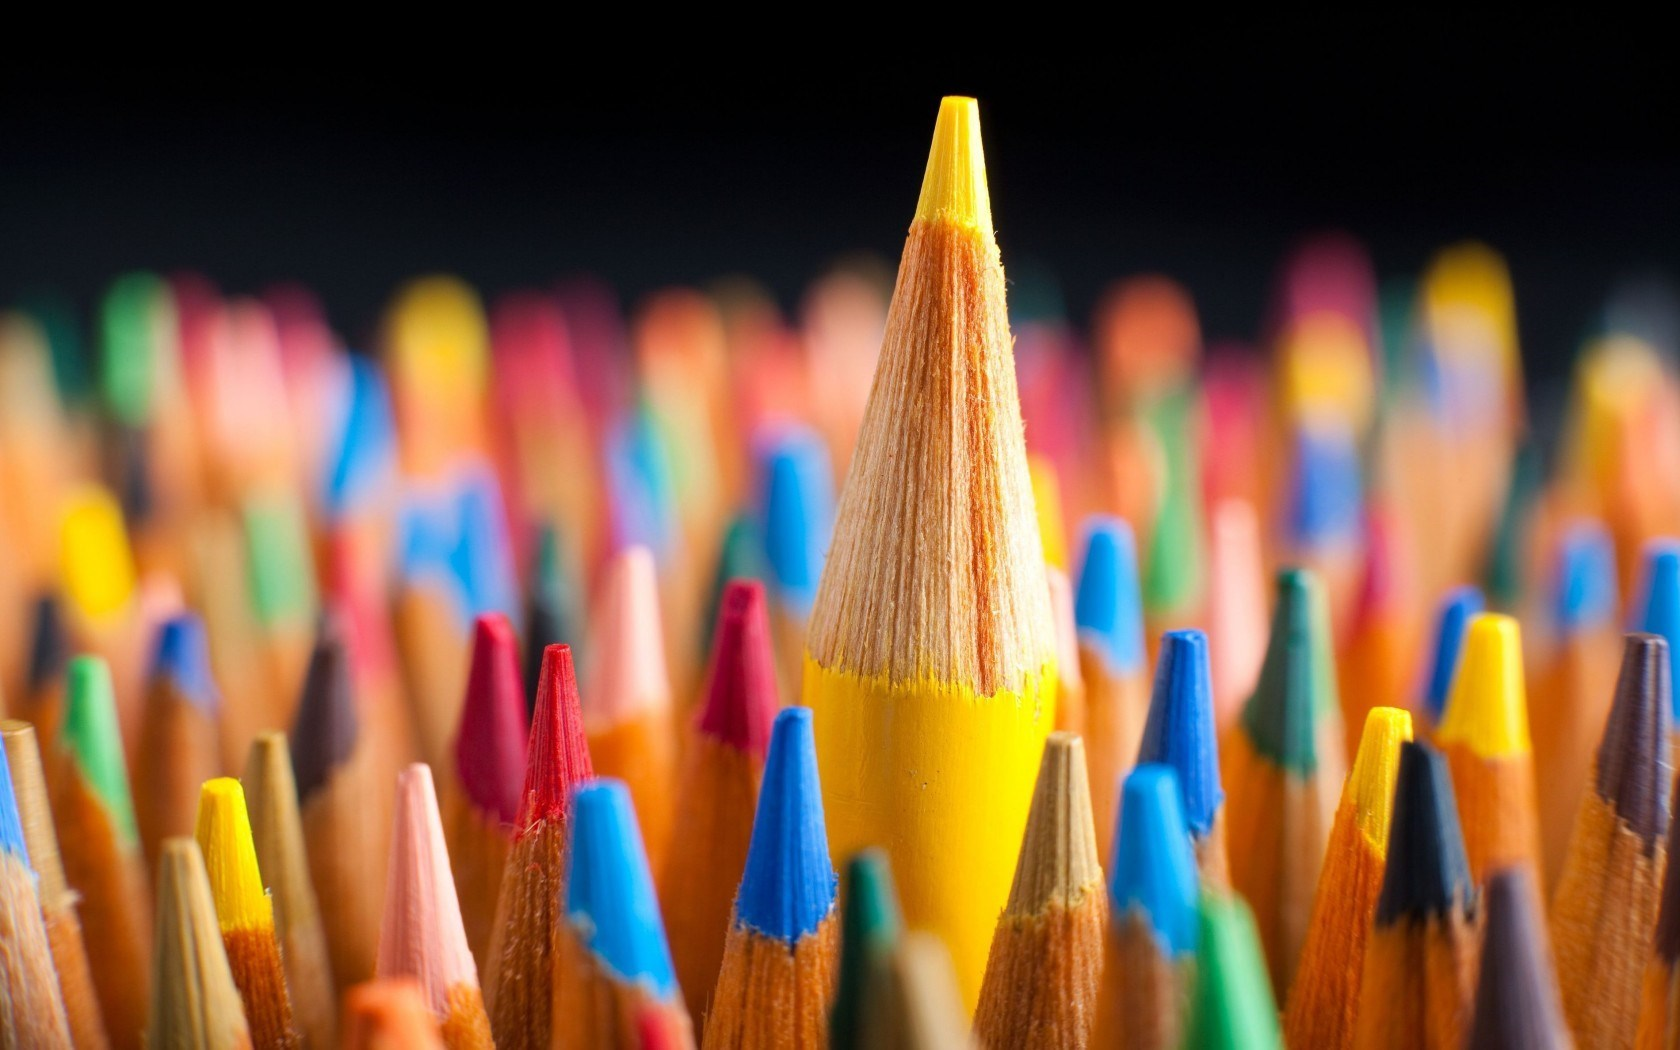 Colored Pencils Up Close Wallpaper